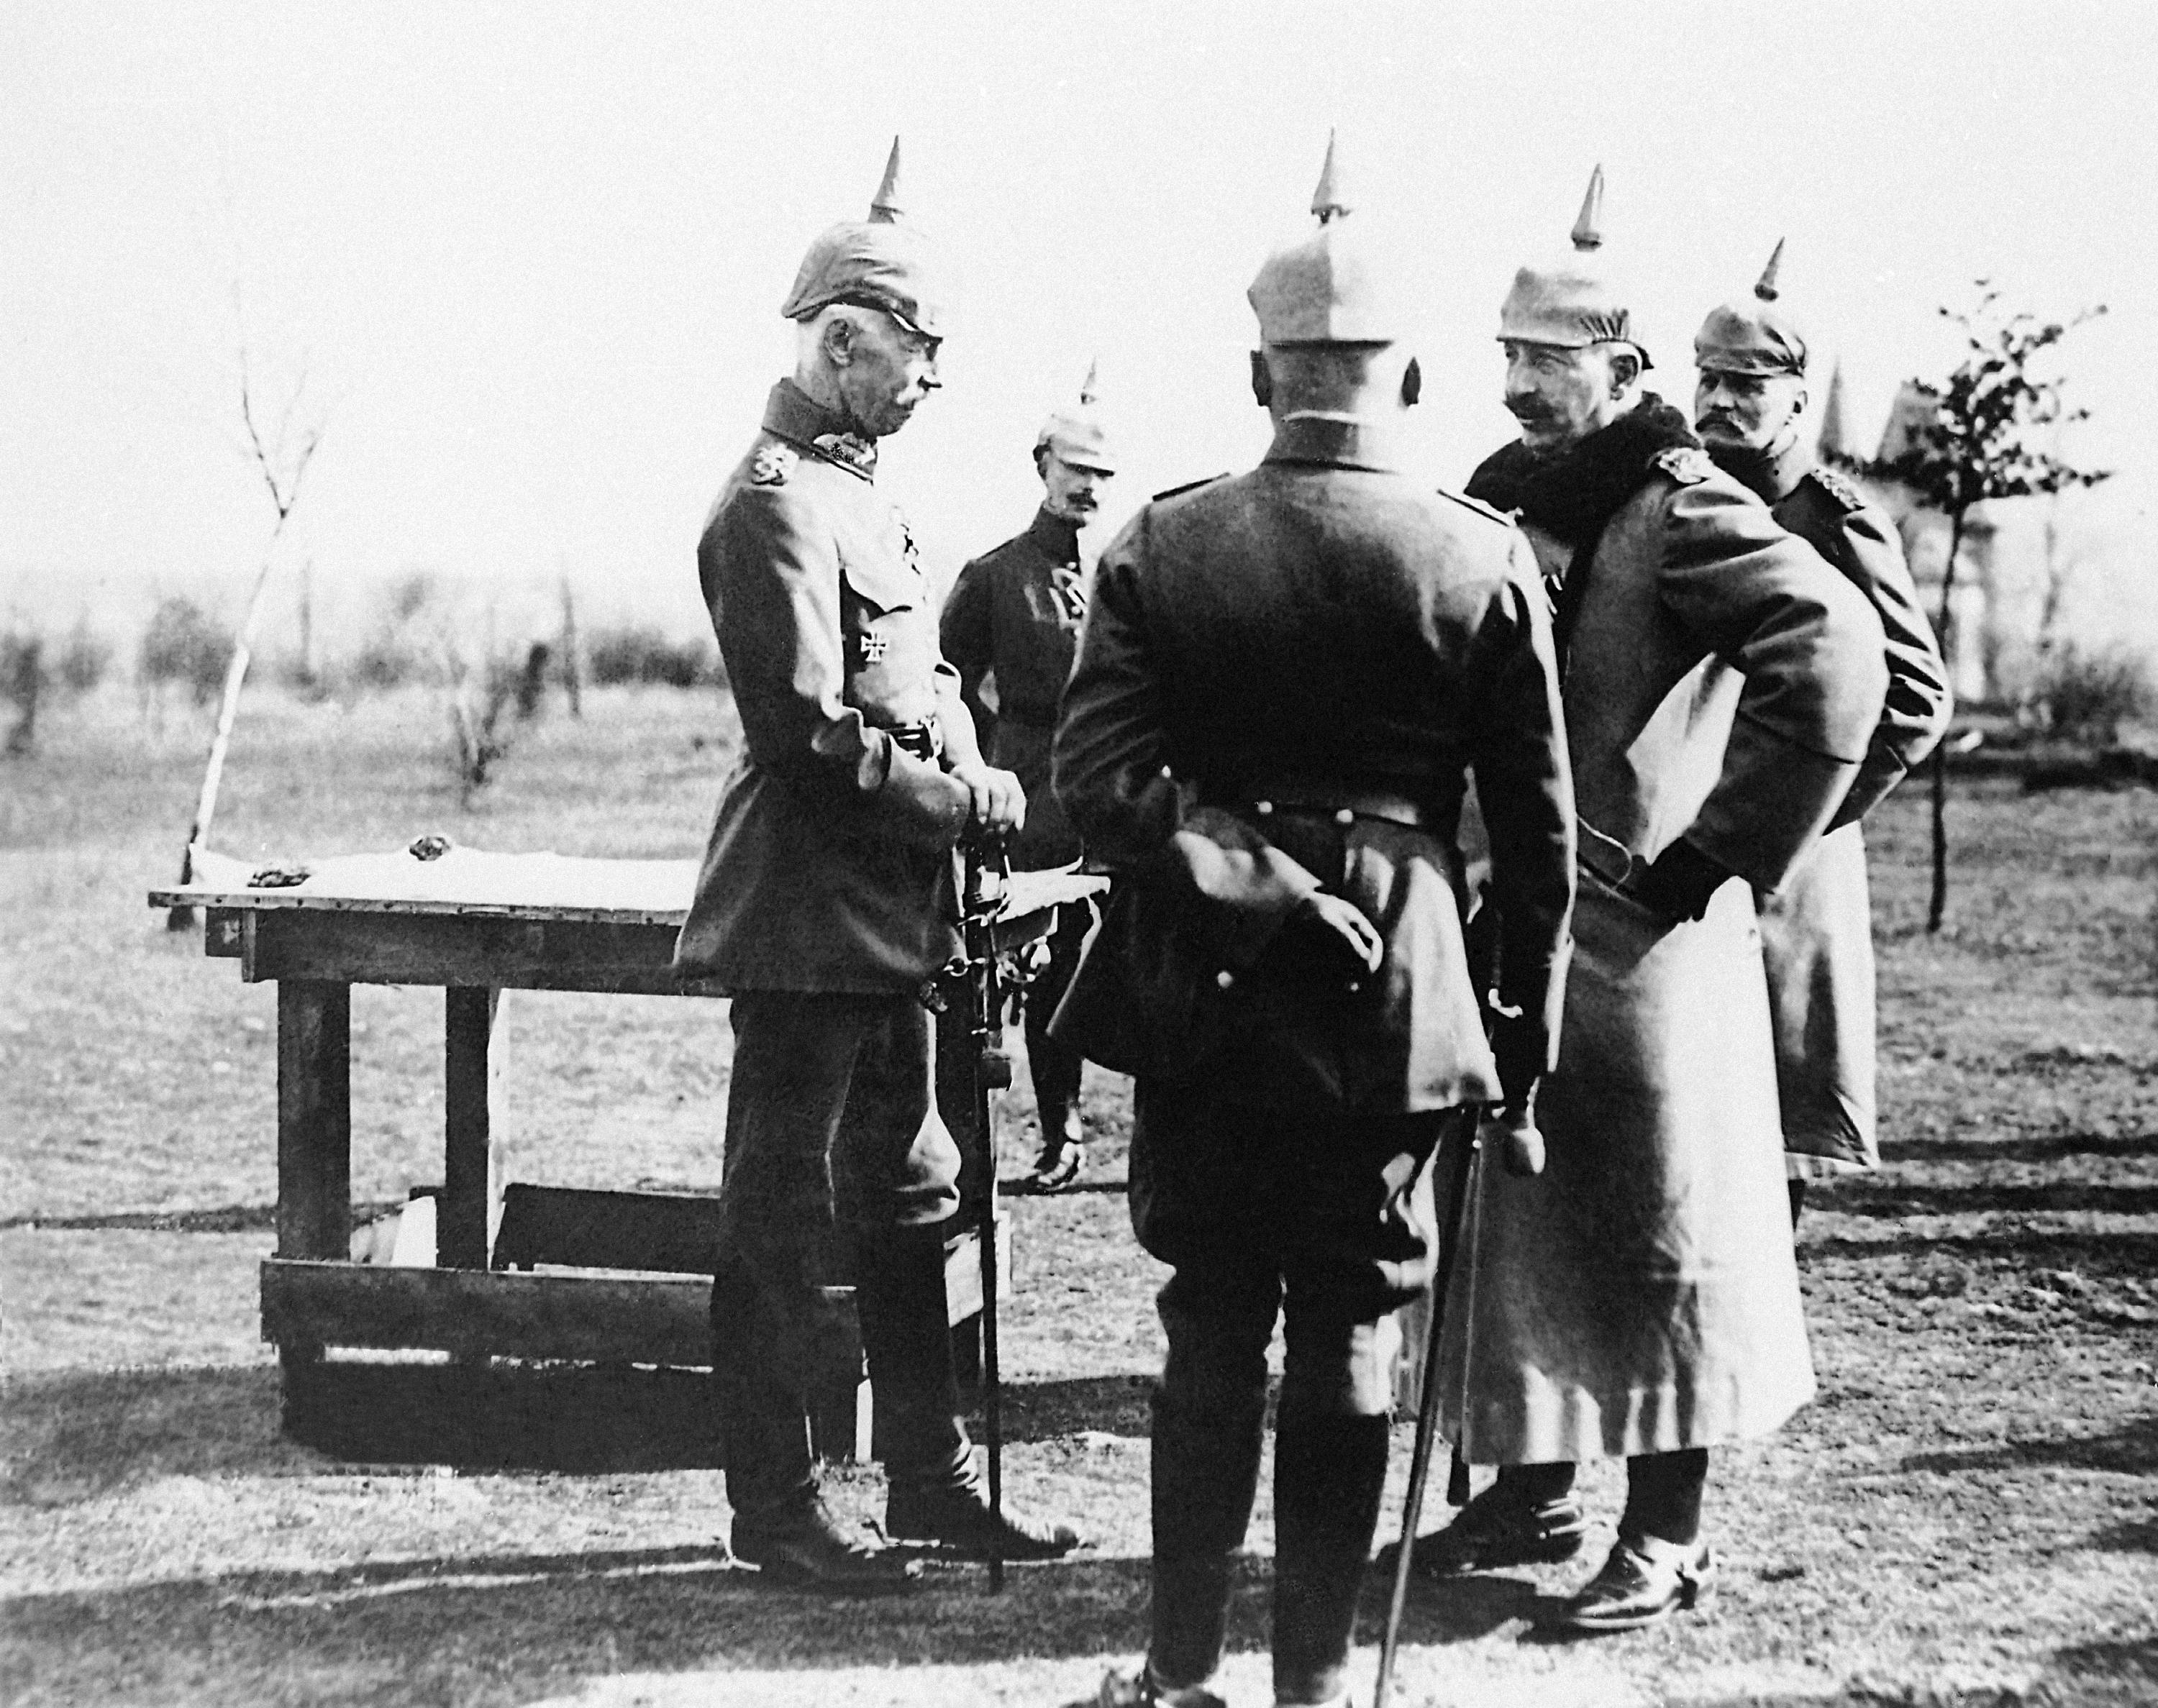 15 OF 100: In this undated file photo, German soldiers speak with each other on the Western Front during World War I.